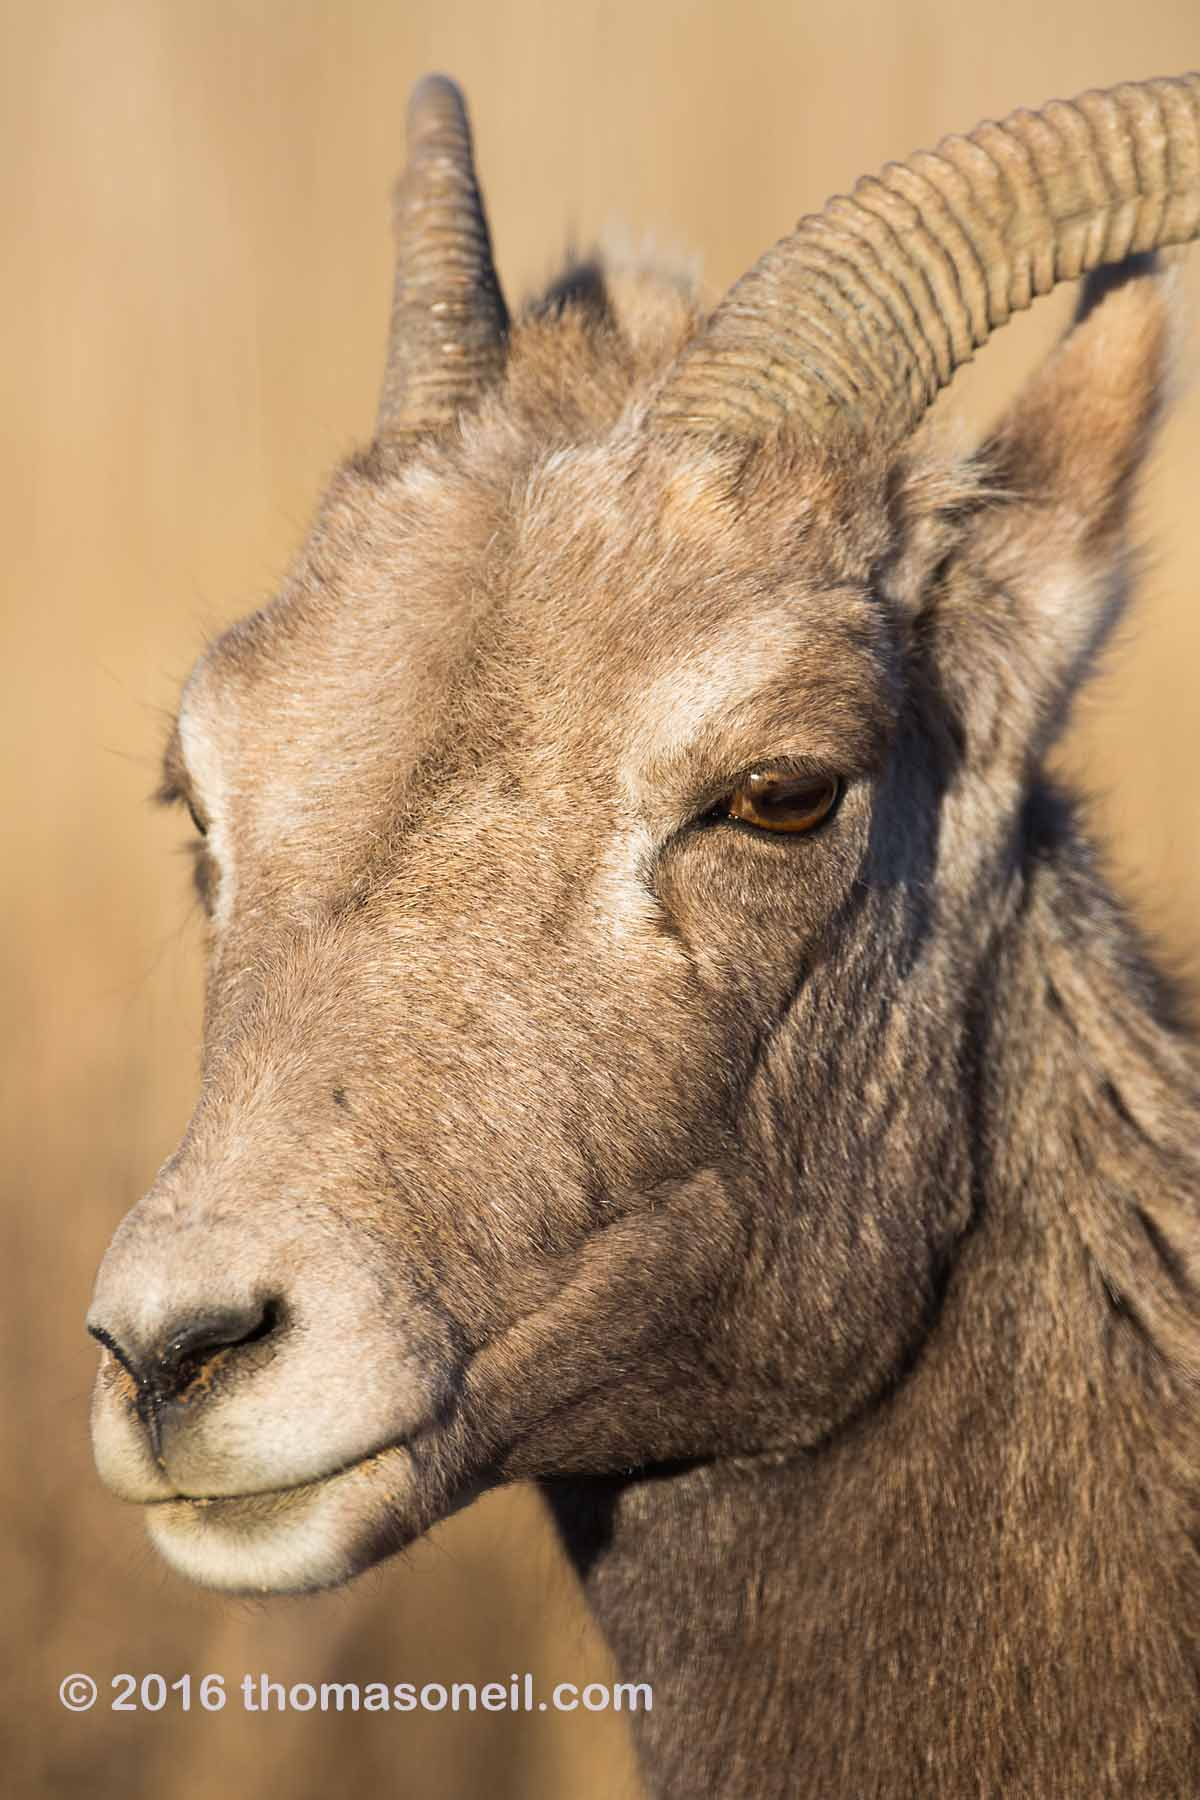 Bighorn ewe portrait, Badlands National Park, 2016.  Click for next photo.